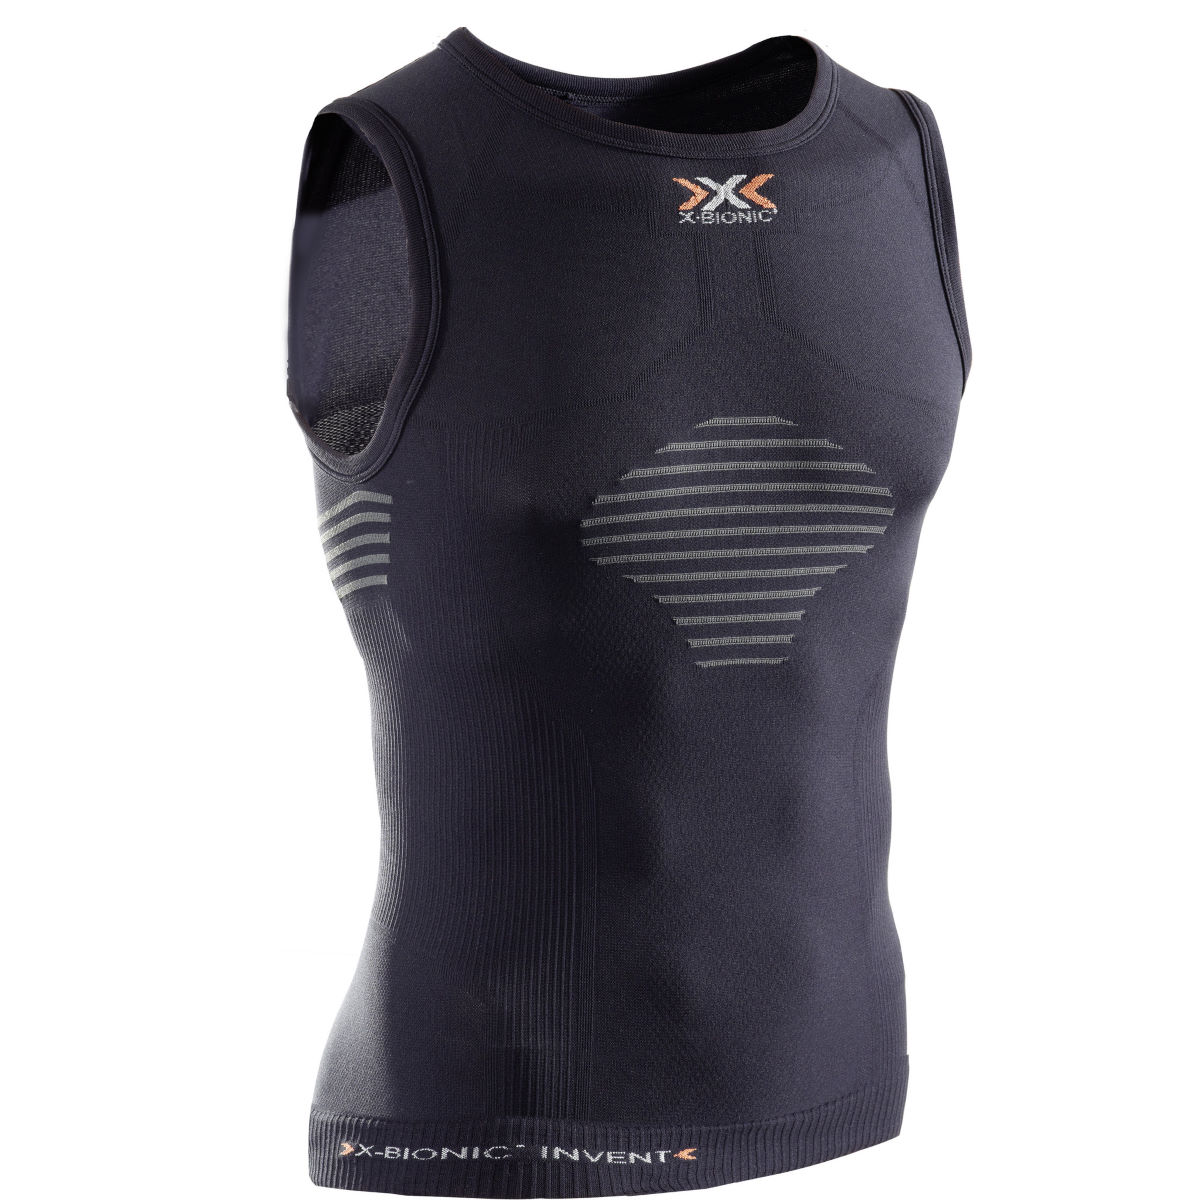 Maillot X-Bionic Invent Light UW (sans manches, blanc) - Small Noir